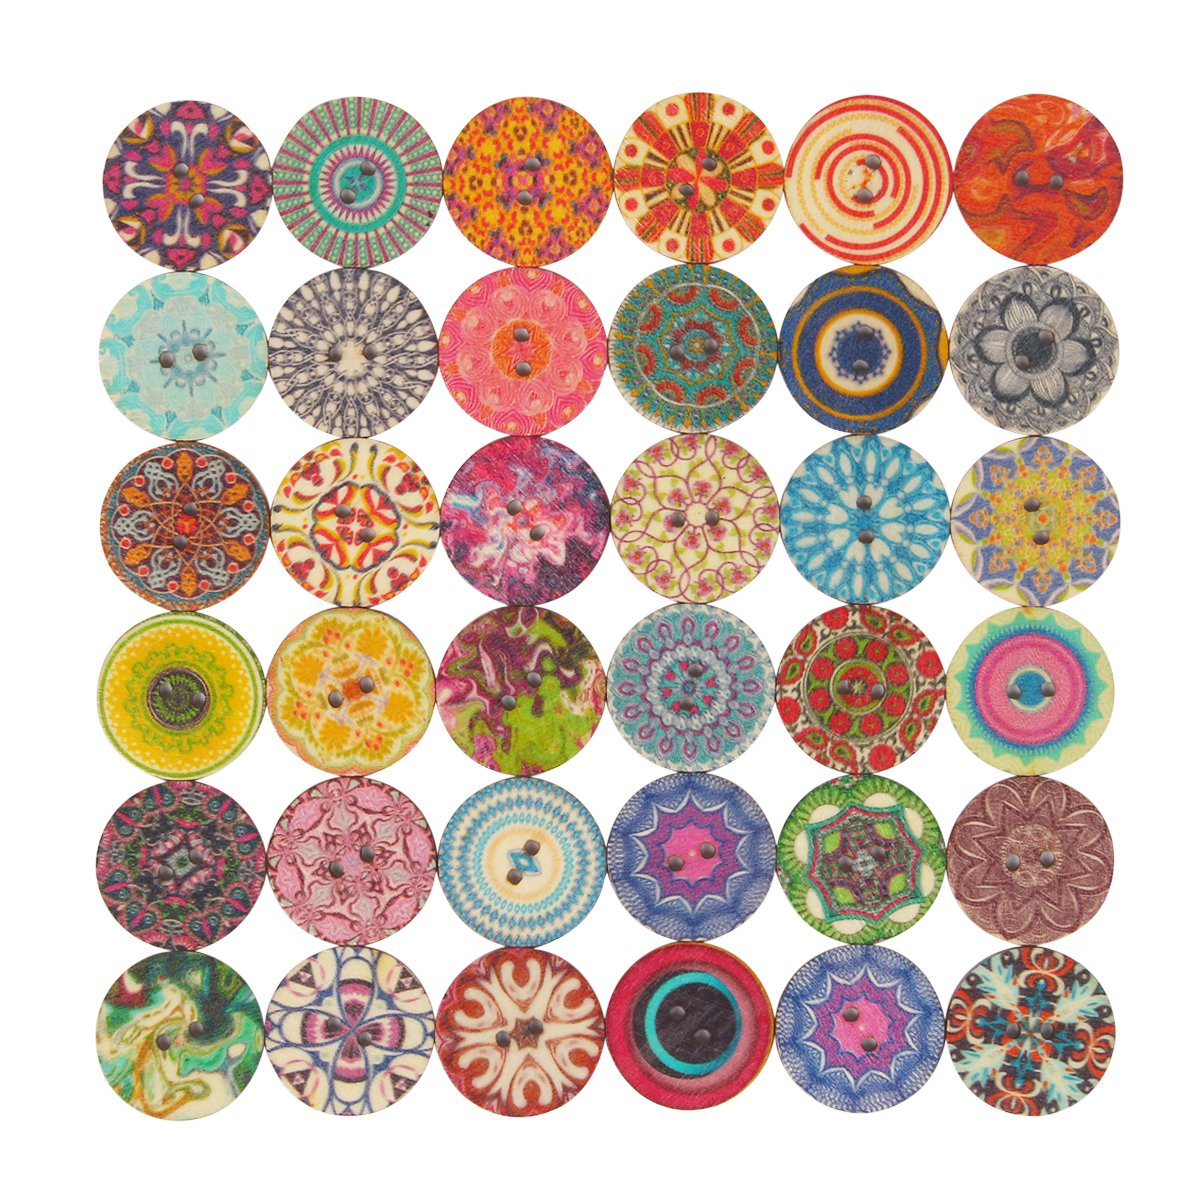 Mahaohao Mixed Random Flower Painting Round 2 Holes Decorative Wood Wooden Buttons for Sewing Crafting 25mm 1 Inch Pack of 100 4337004515